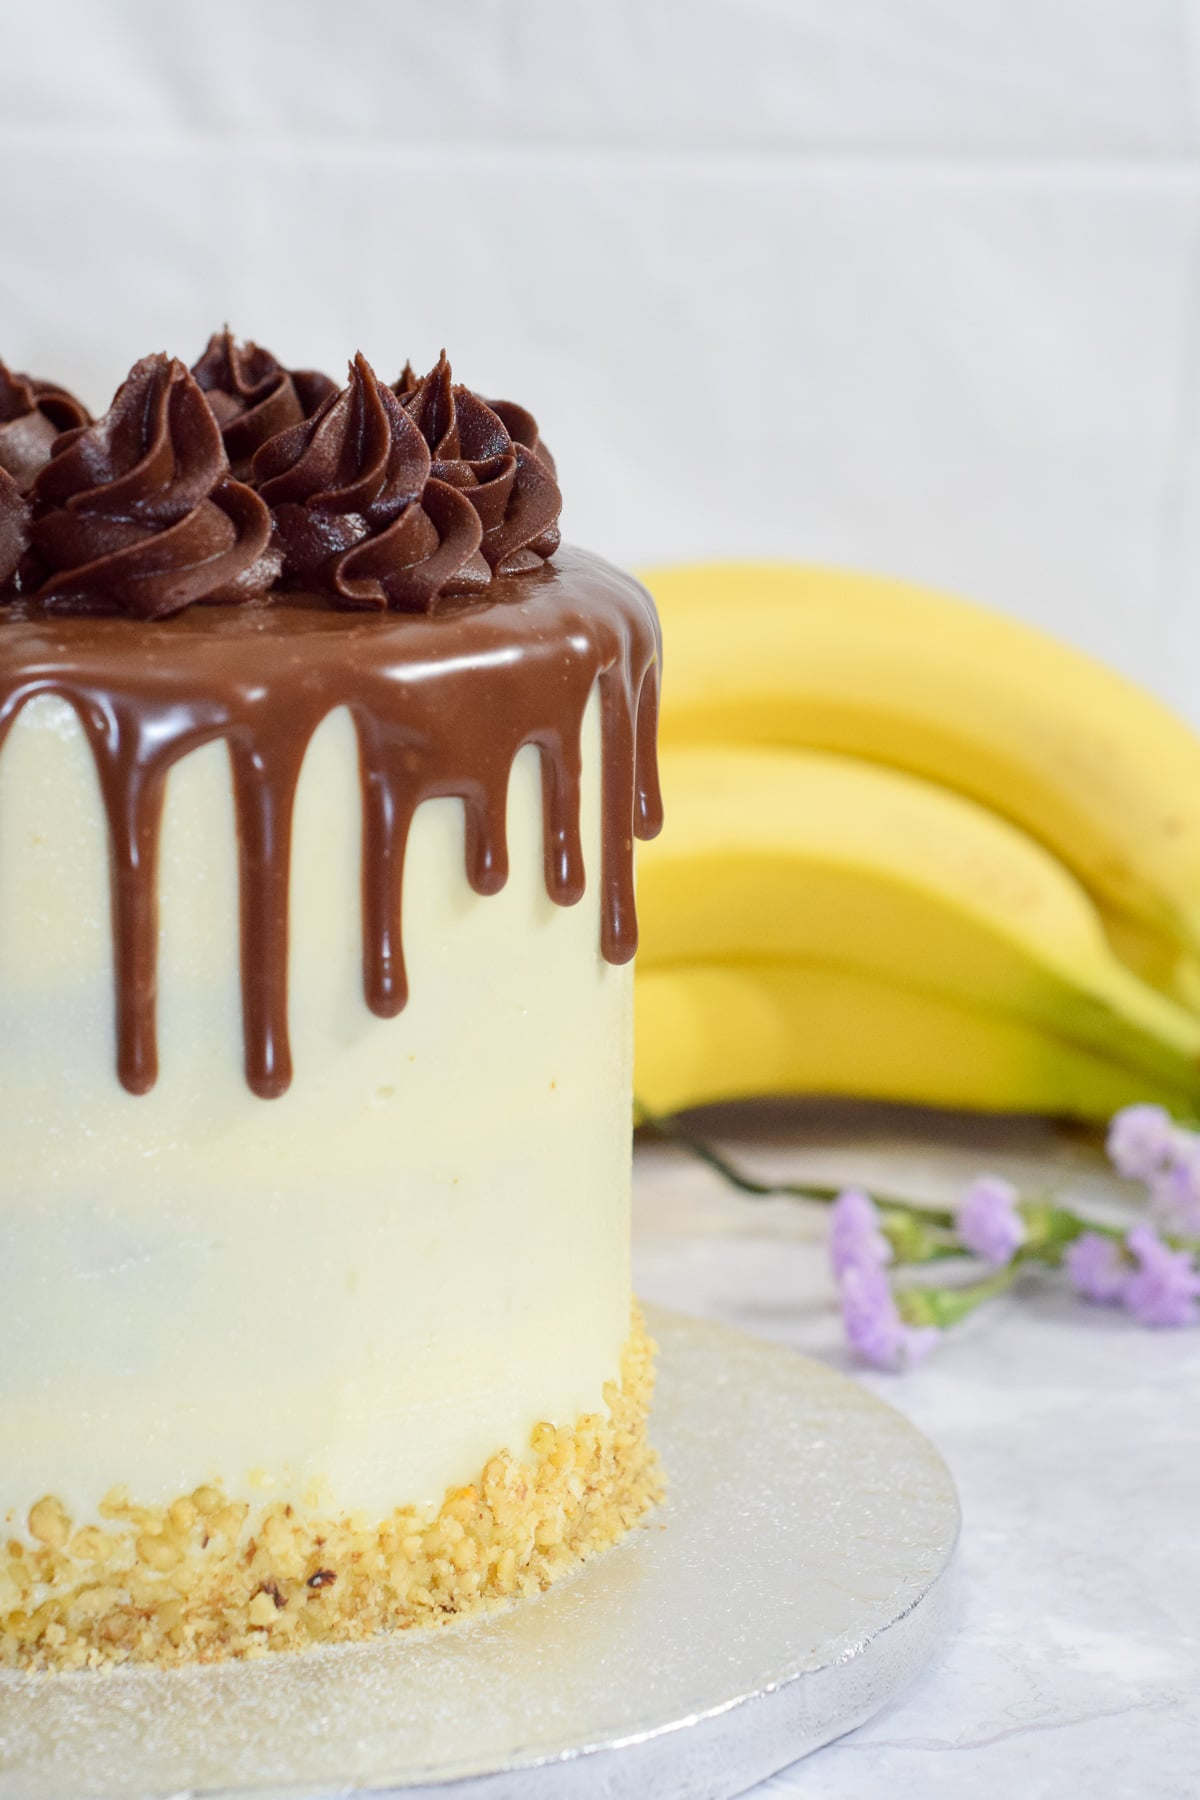 Banana walnut cake with vanilla cream cheese frosting and a milk chocolate ganache drip - side on view